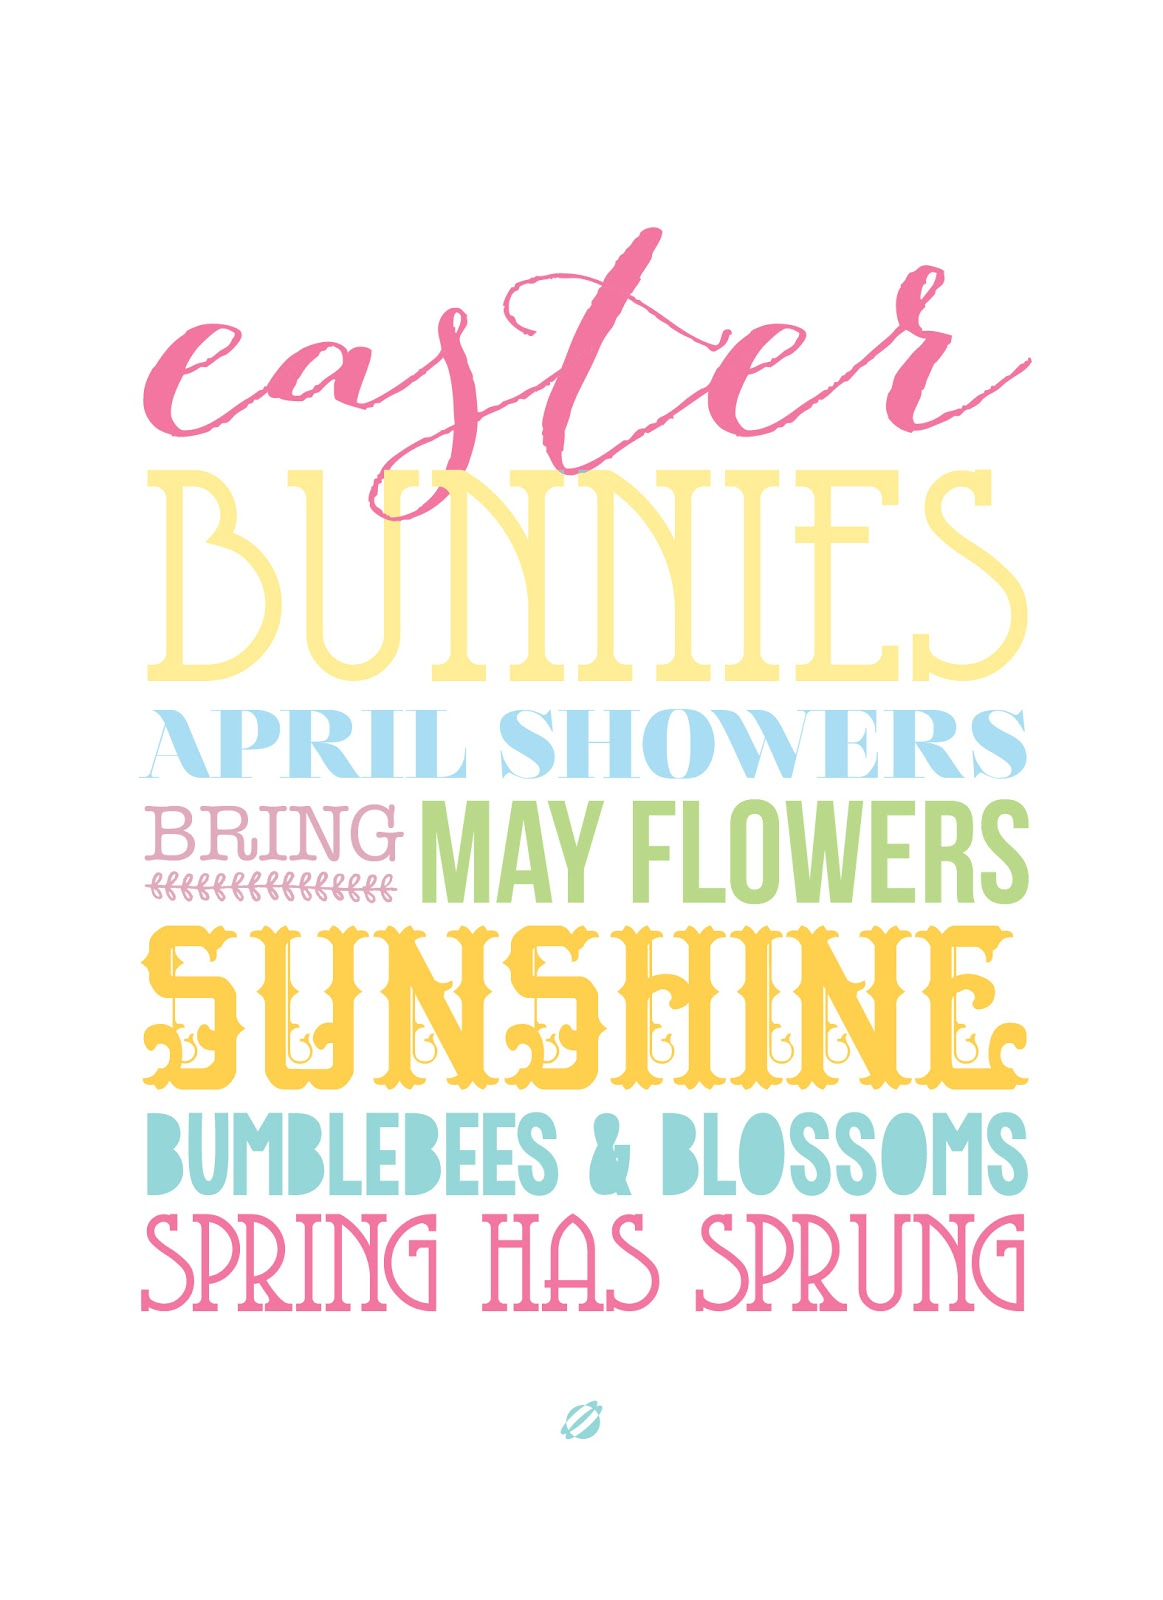 LostBumblebee 2014 ©2014 Spring has Sprung FREE PRINTABLE for personal use only